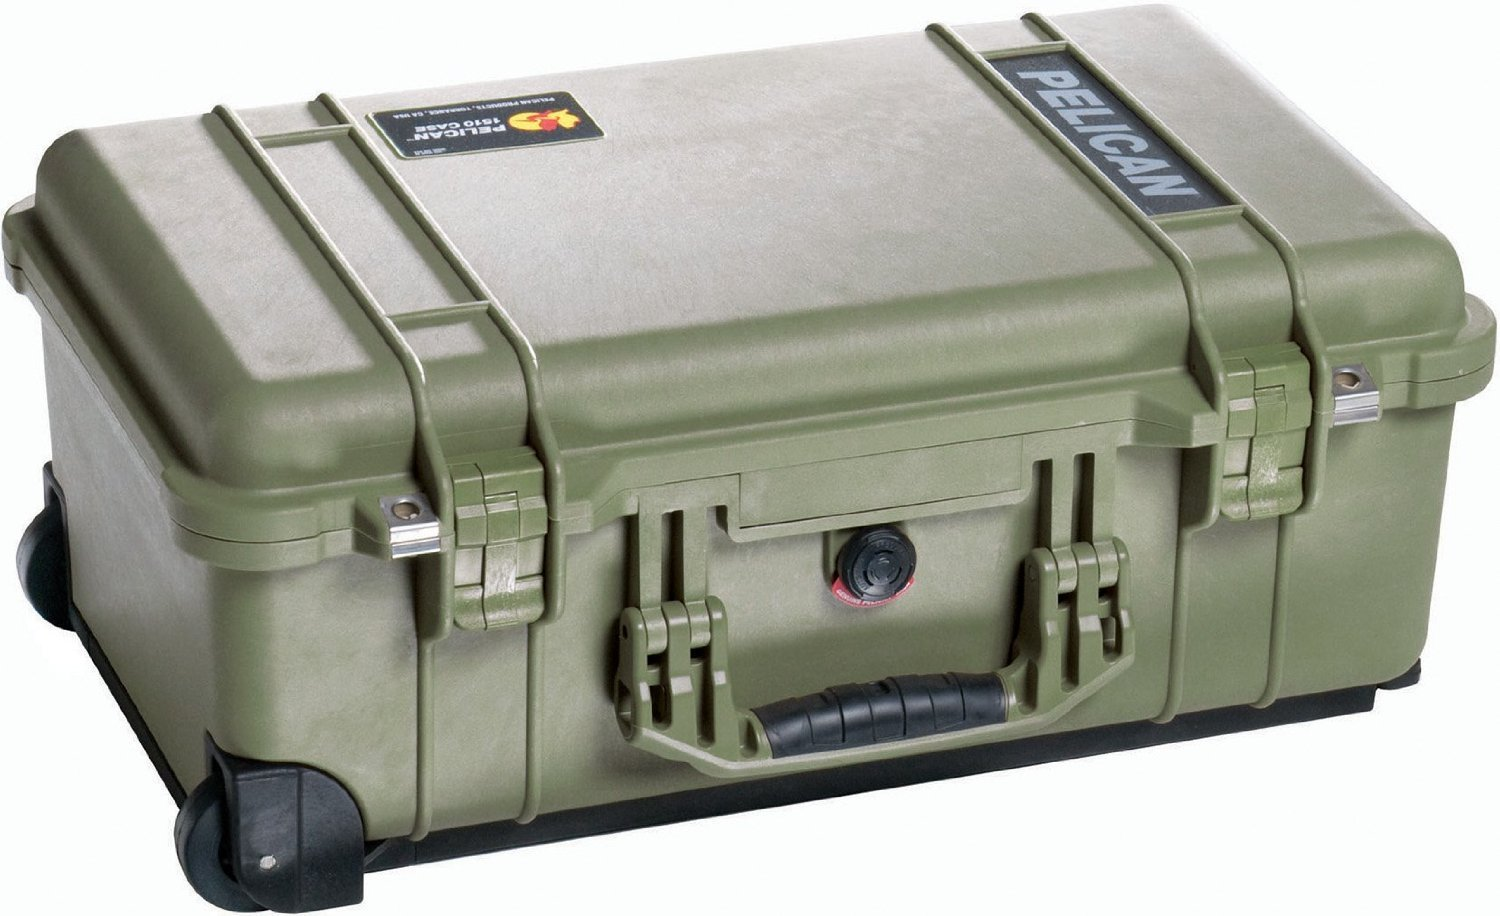 Pelican Products 1510-008-130 Medium Laptop Overnight Case, 1510LOC with Foam Base (OD Green) [並行輸入品] B0160M1V7C